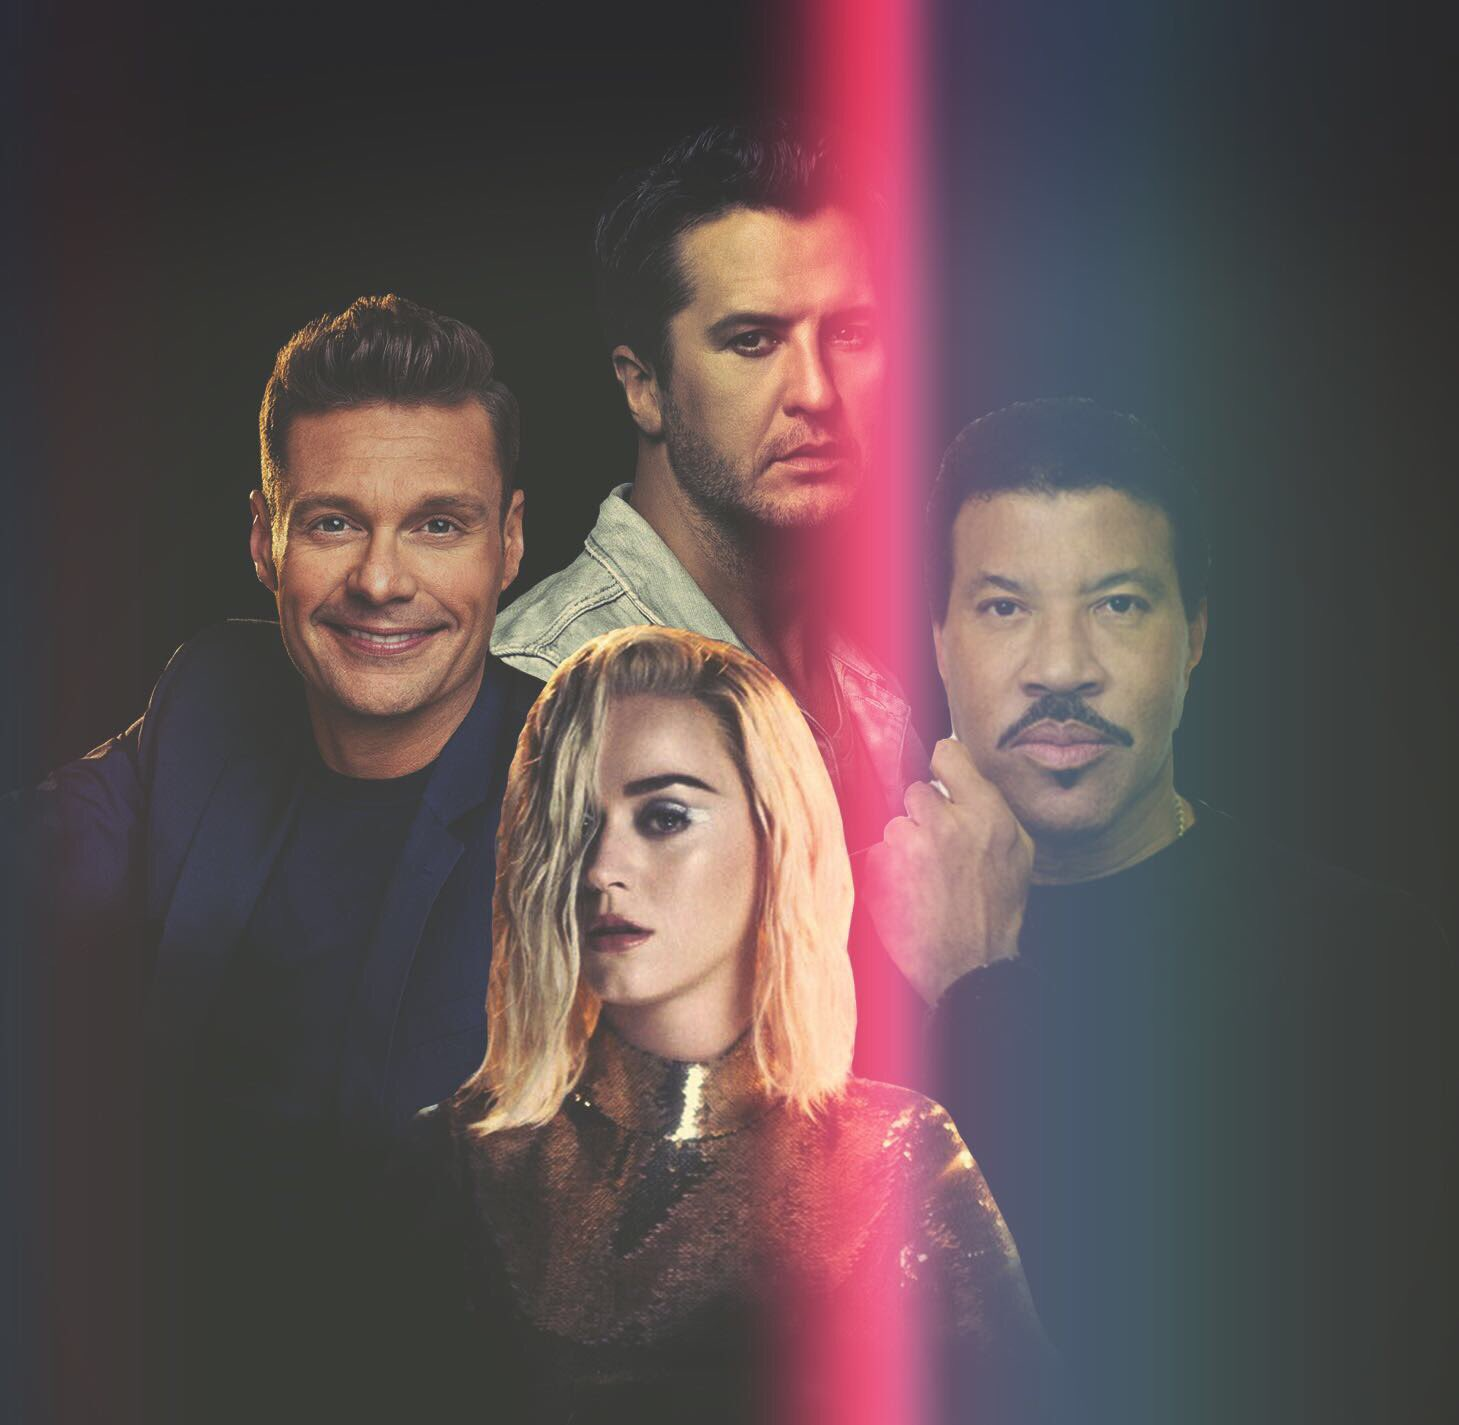 ☑ your calendars ���� let's find an IDOL❗@AmericanIdol will premiere Sunday, March 11 on ABC. #AmericanIdol https://t.co/adKVabe5EE